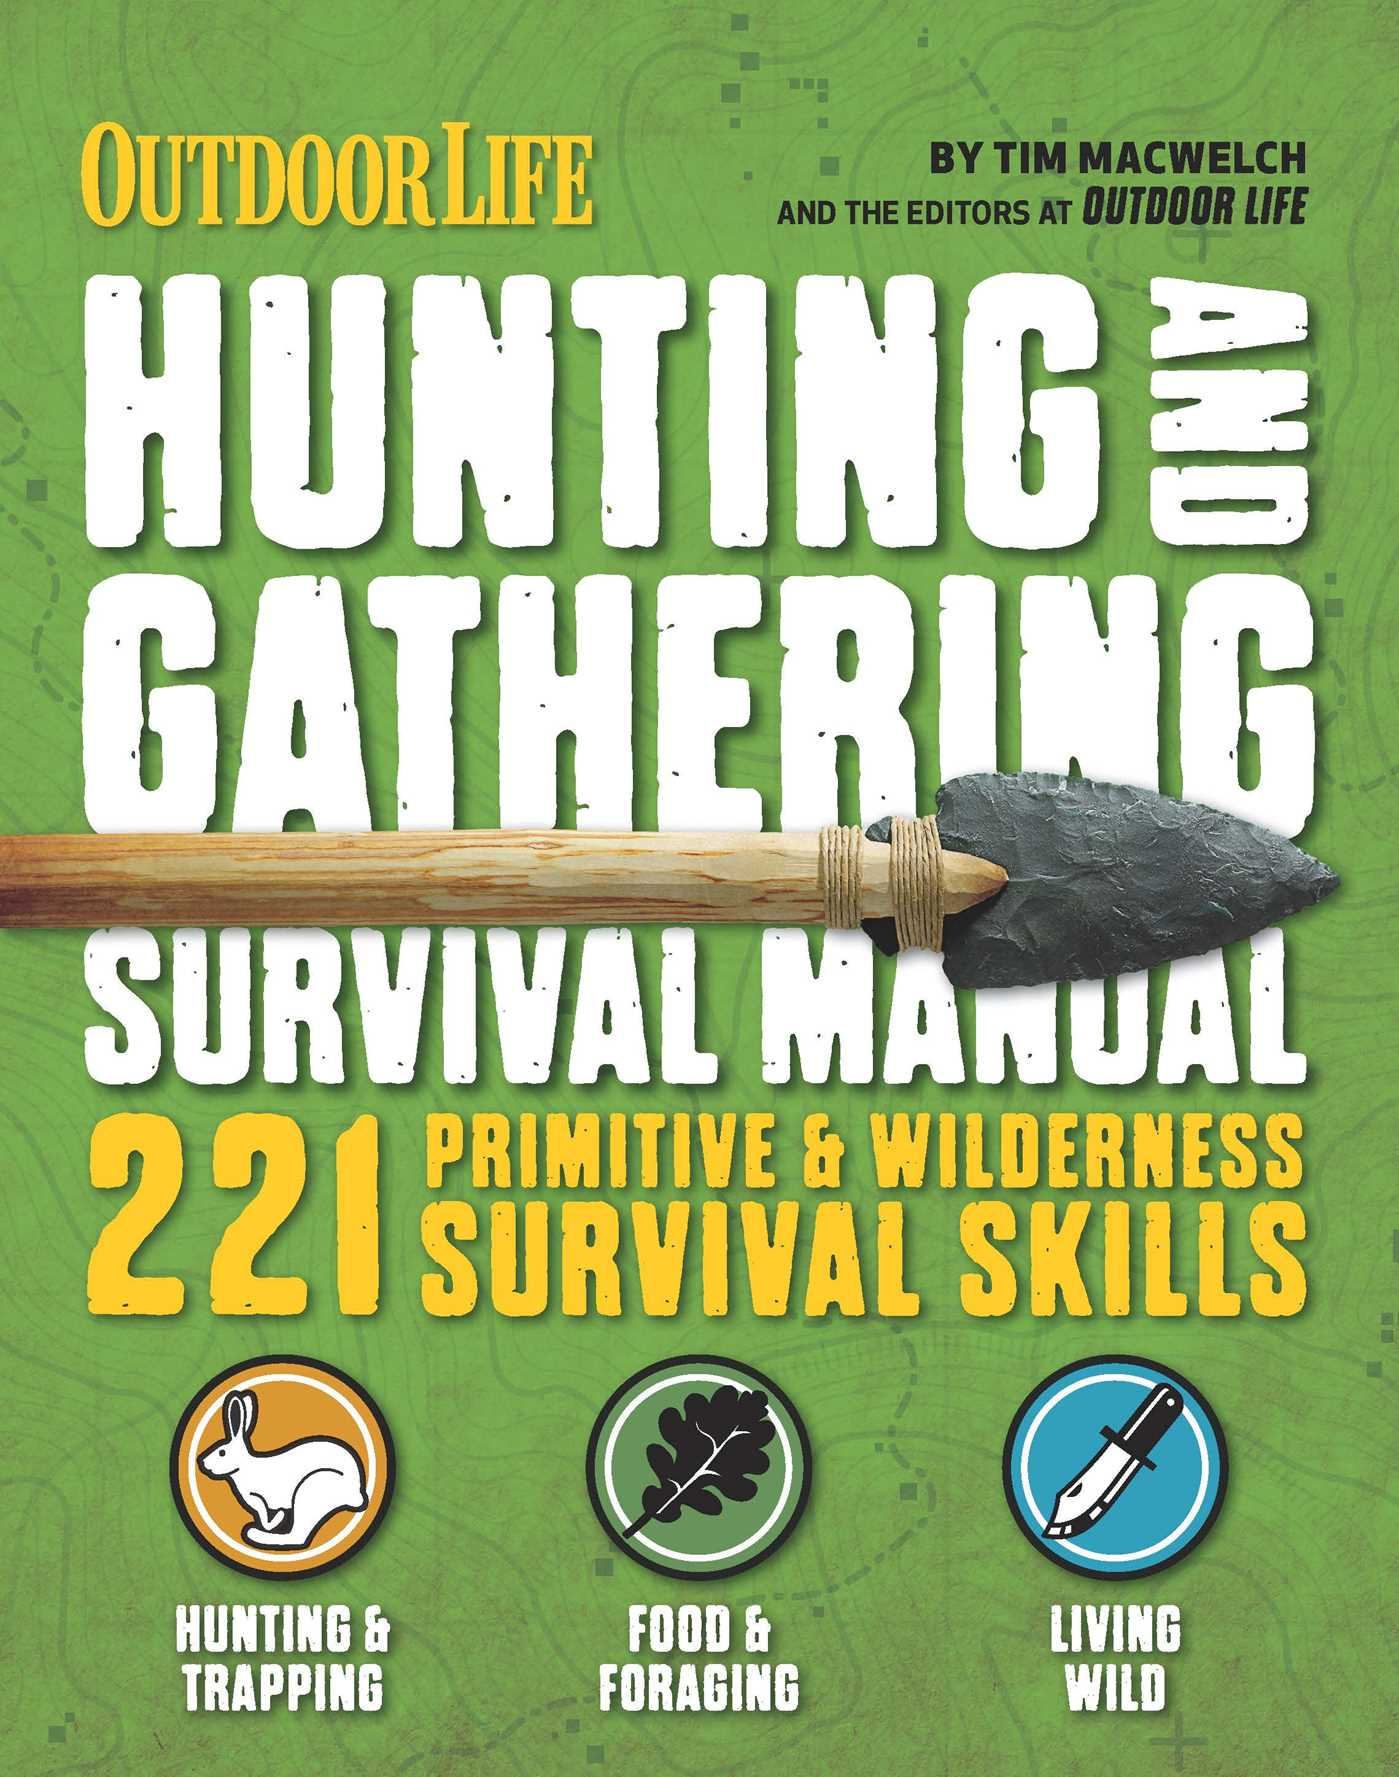 Book Cover Image (jpg): The Hunting & Gathering Survival Manual